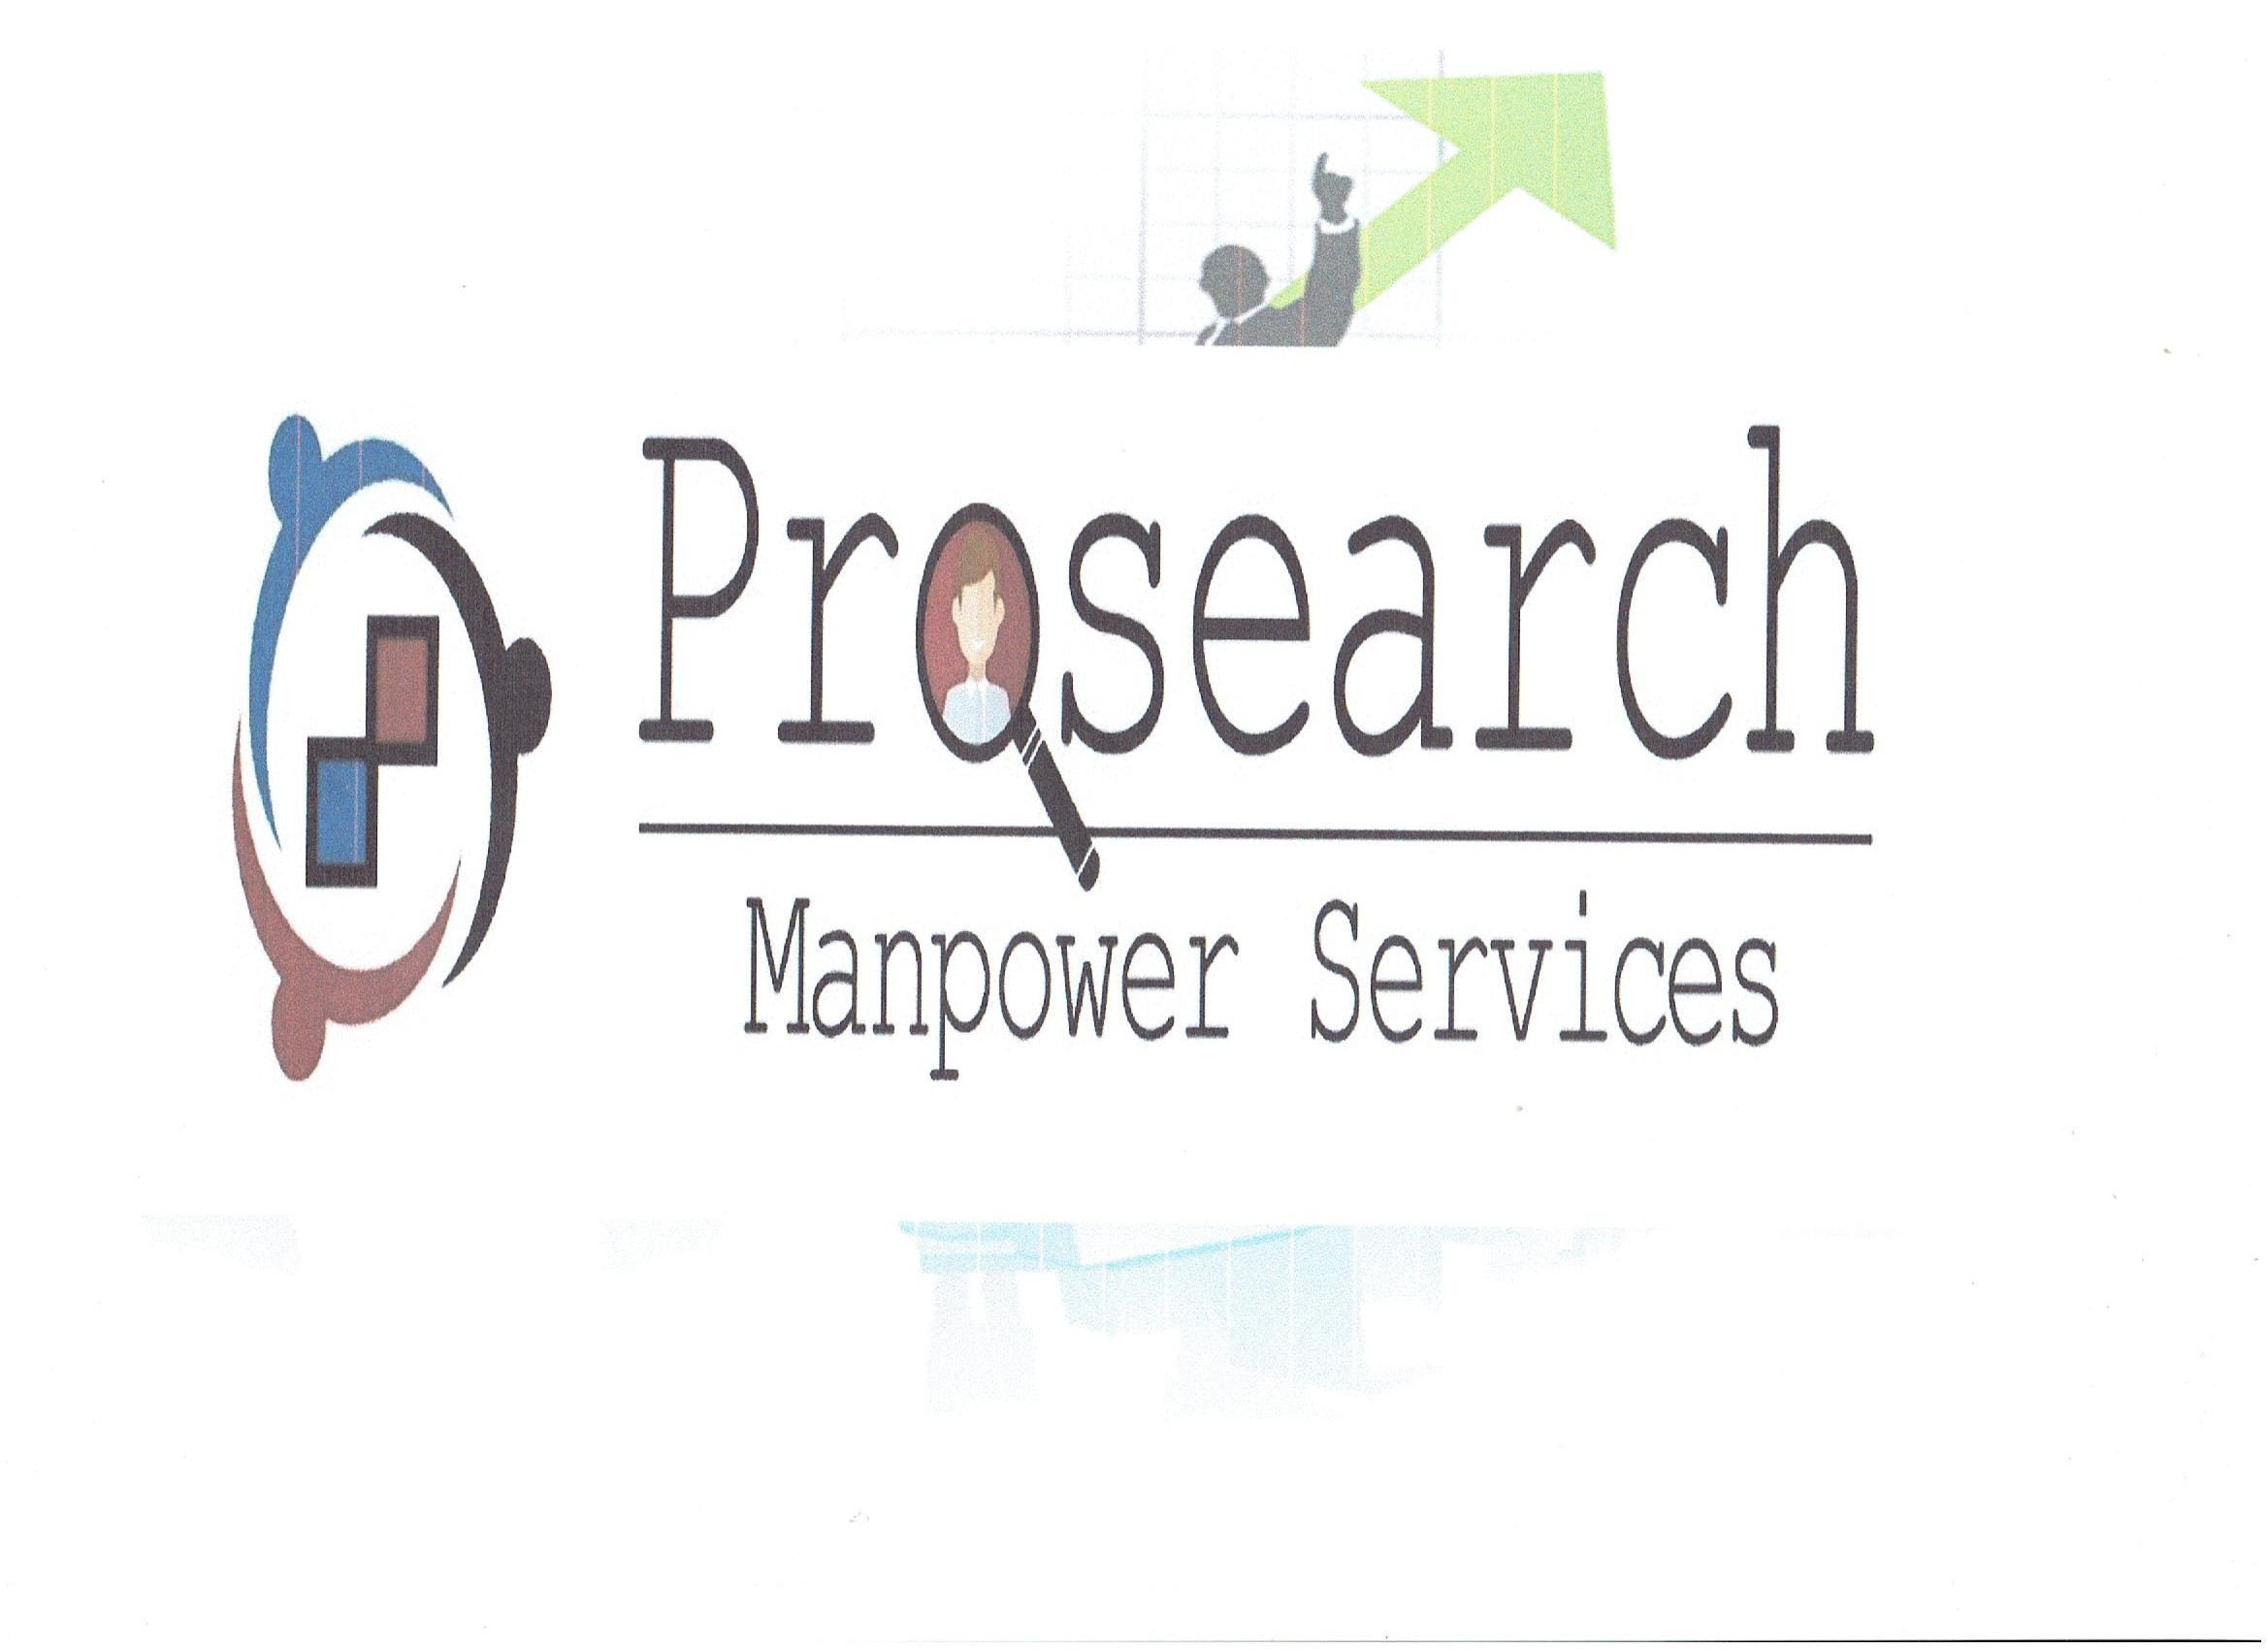 PROSEARCH MANPOWER SERVICES from Pasig City is Looking for